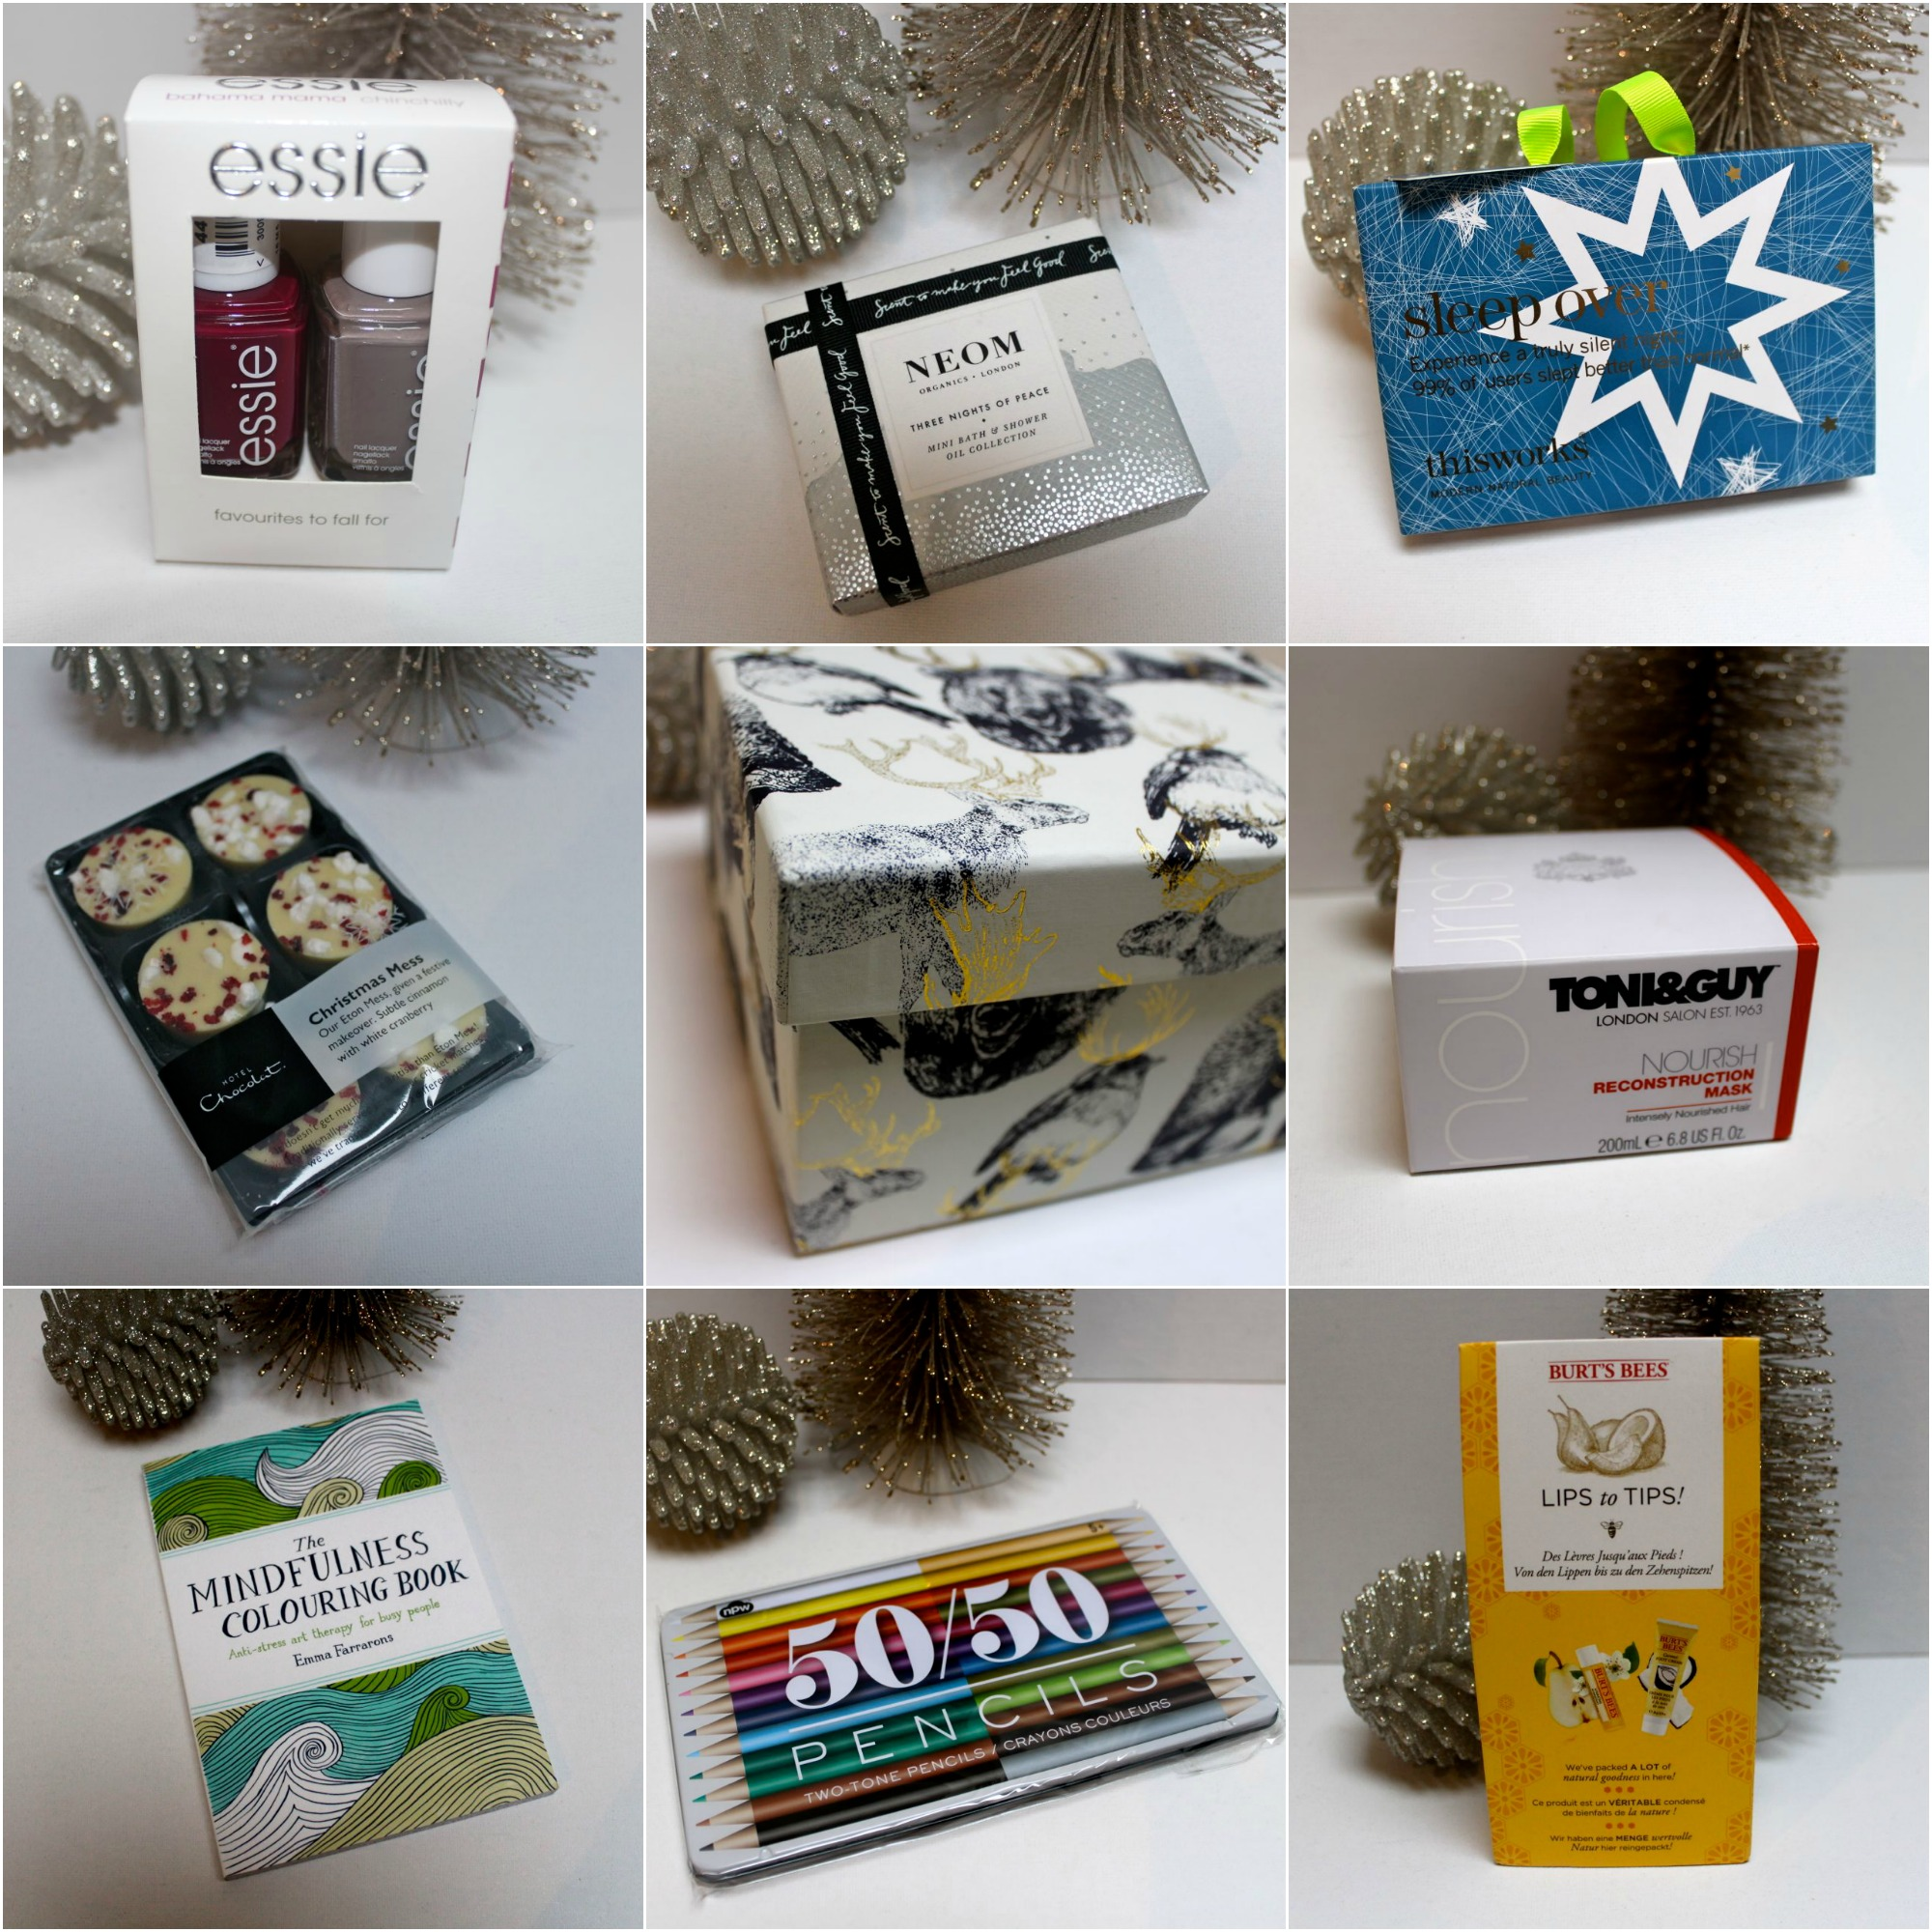 The What Now Christmas Giveaway